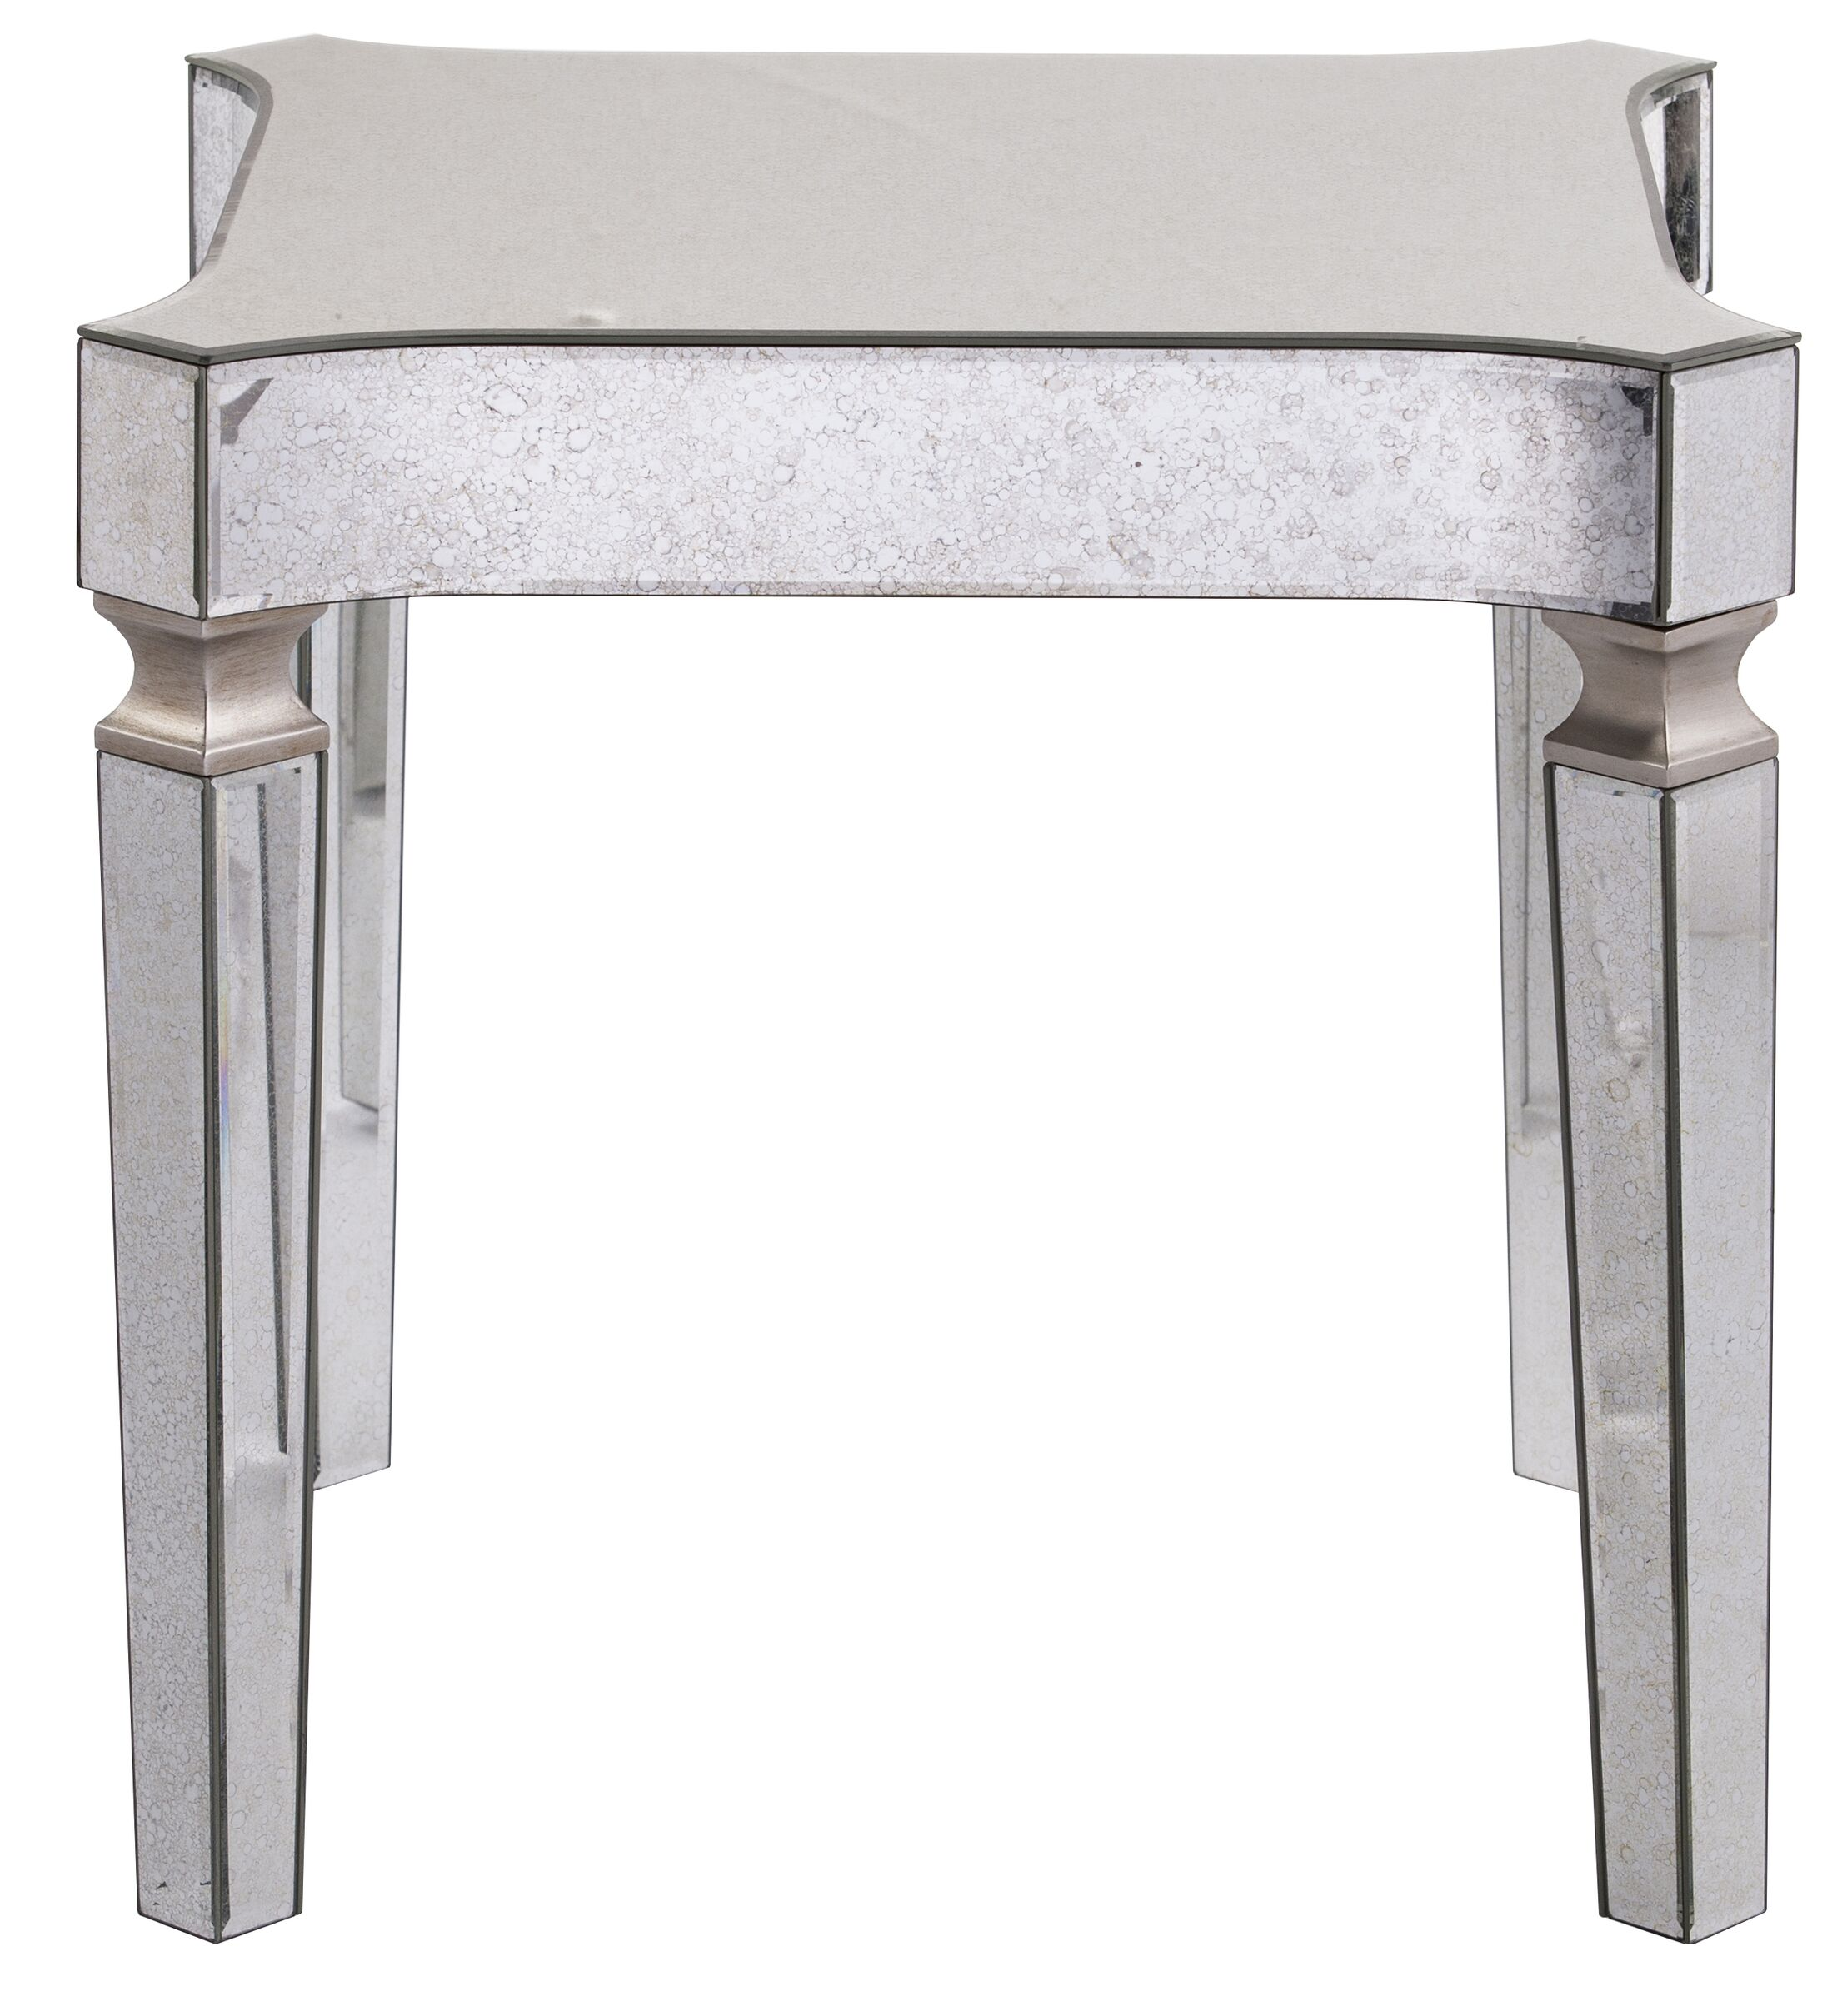 Paulsen Mirrored End Table with Tray